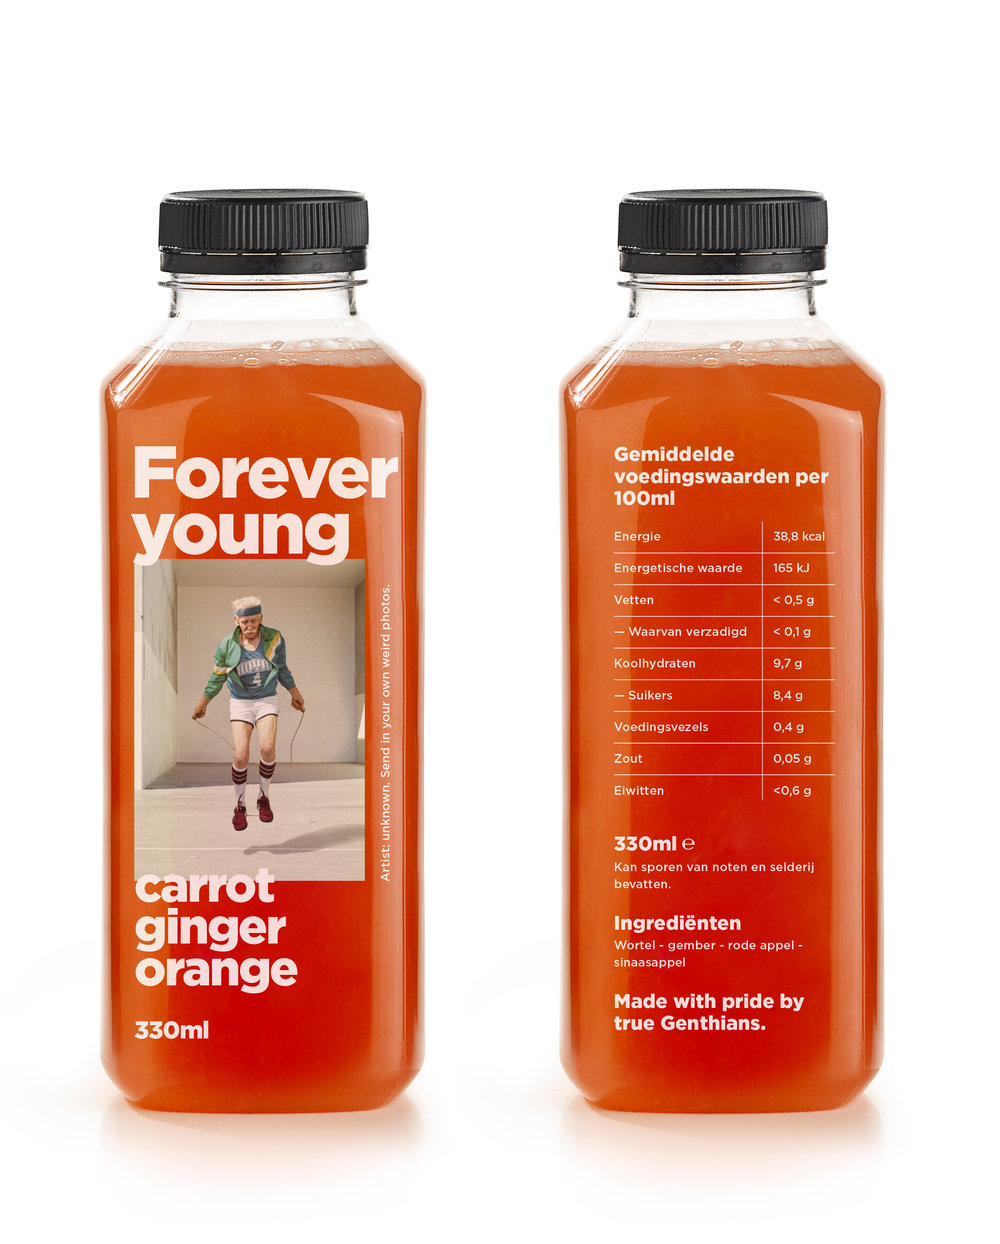 FOREVER YOUNG - Carotte / Ginger / Red apple / orange-This orange brew pimps your metabolism and slows down the aging process. Take a sel e afterwards.